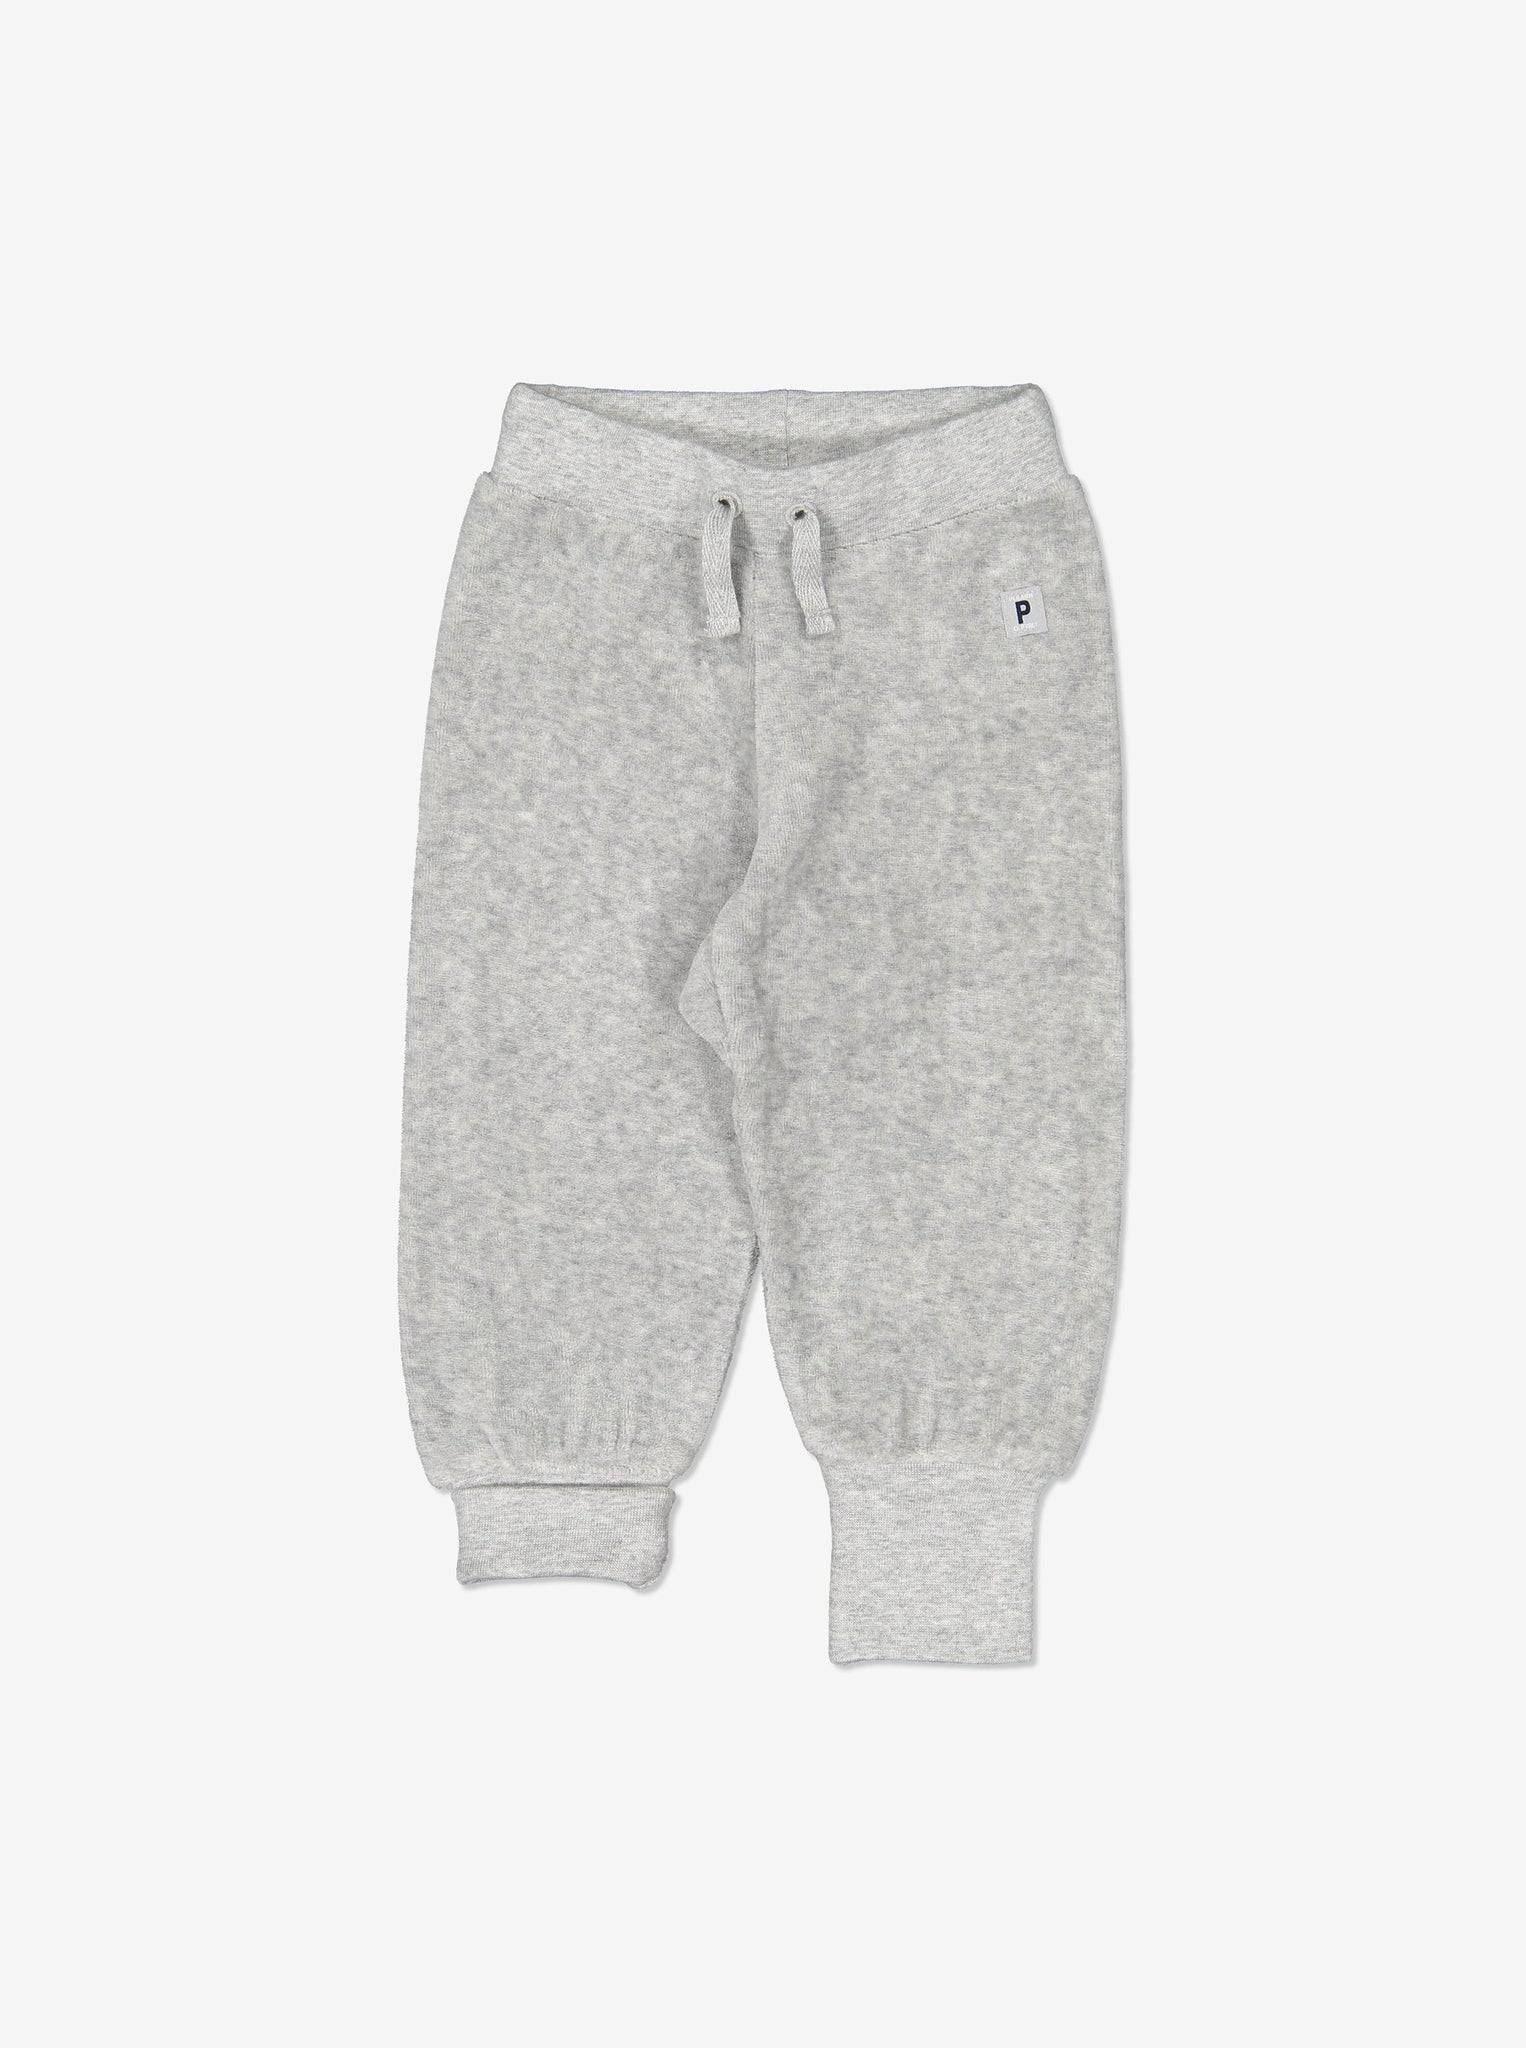 Kids Soft Velour Trousers 0-1years Grey Unisex